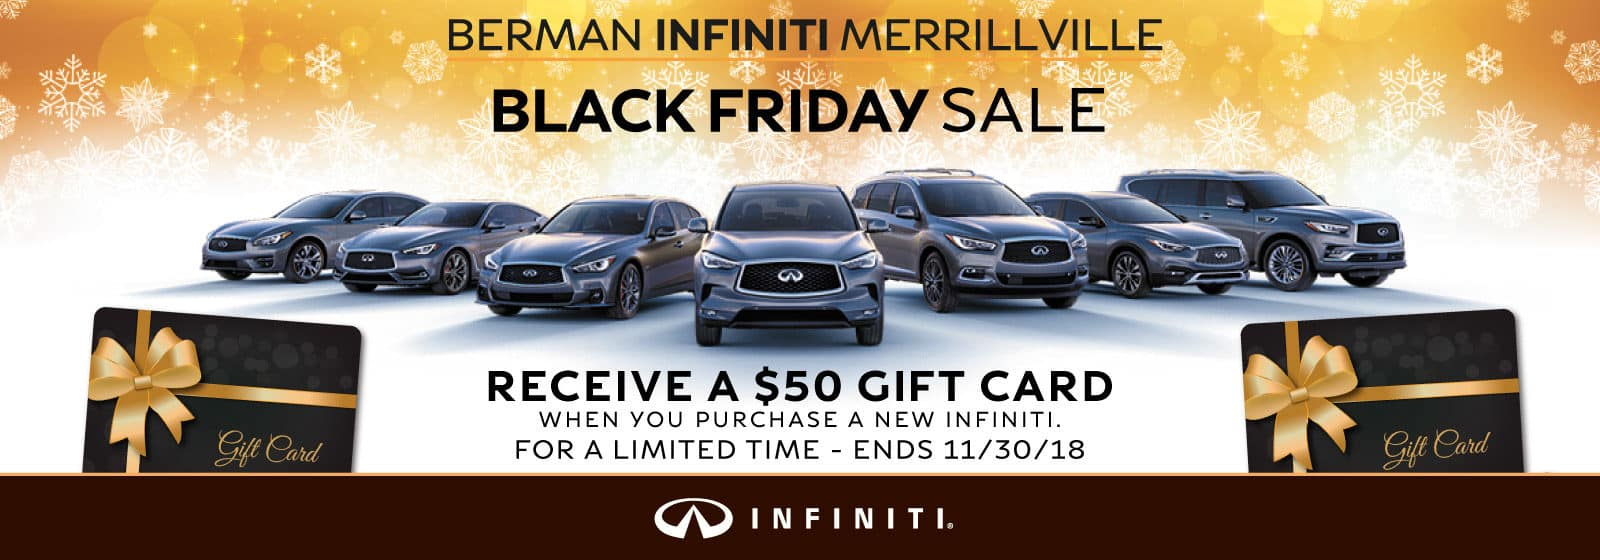 This Black Friday, receive a $50 gift card when you buy a new INFINITI vehicle at Berman INFINITI of Merrillville!